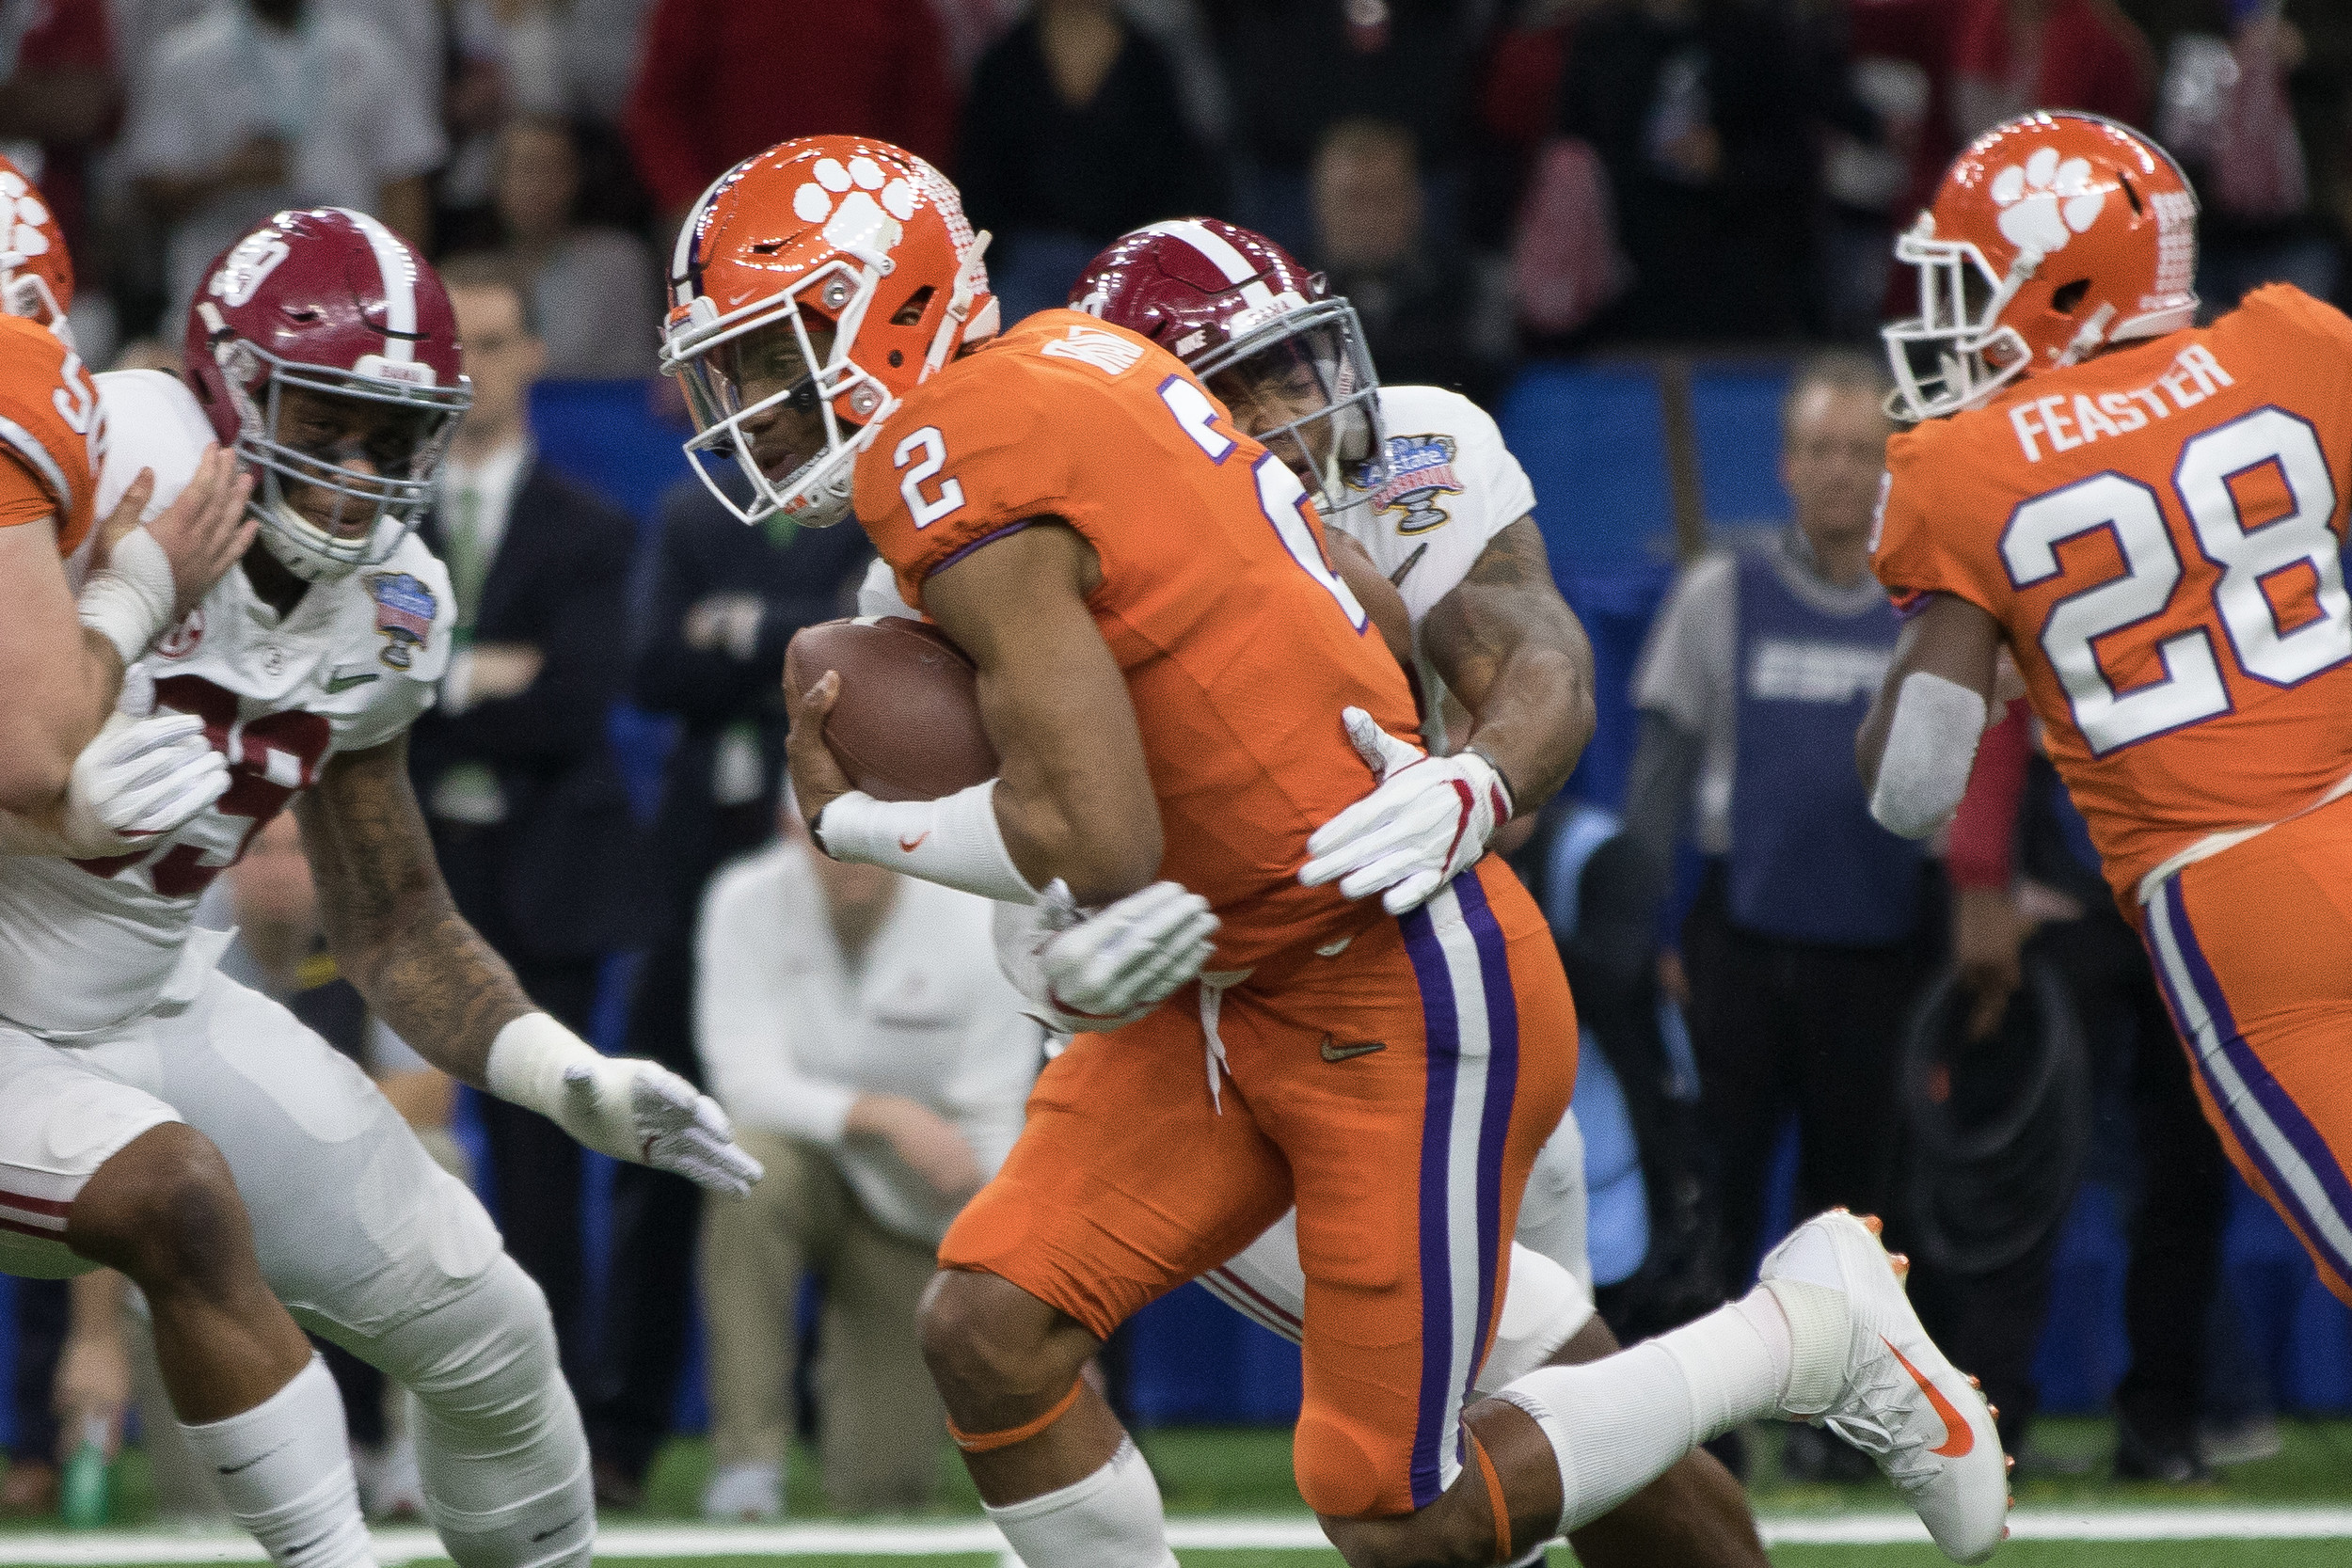 Clemson quarterback Kelly Bryant gets wrapped up by an Alabama defender.